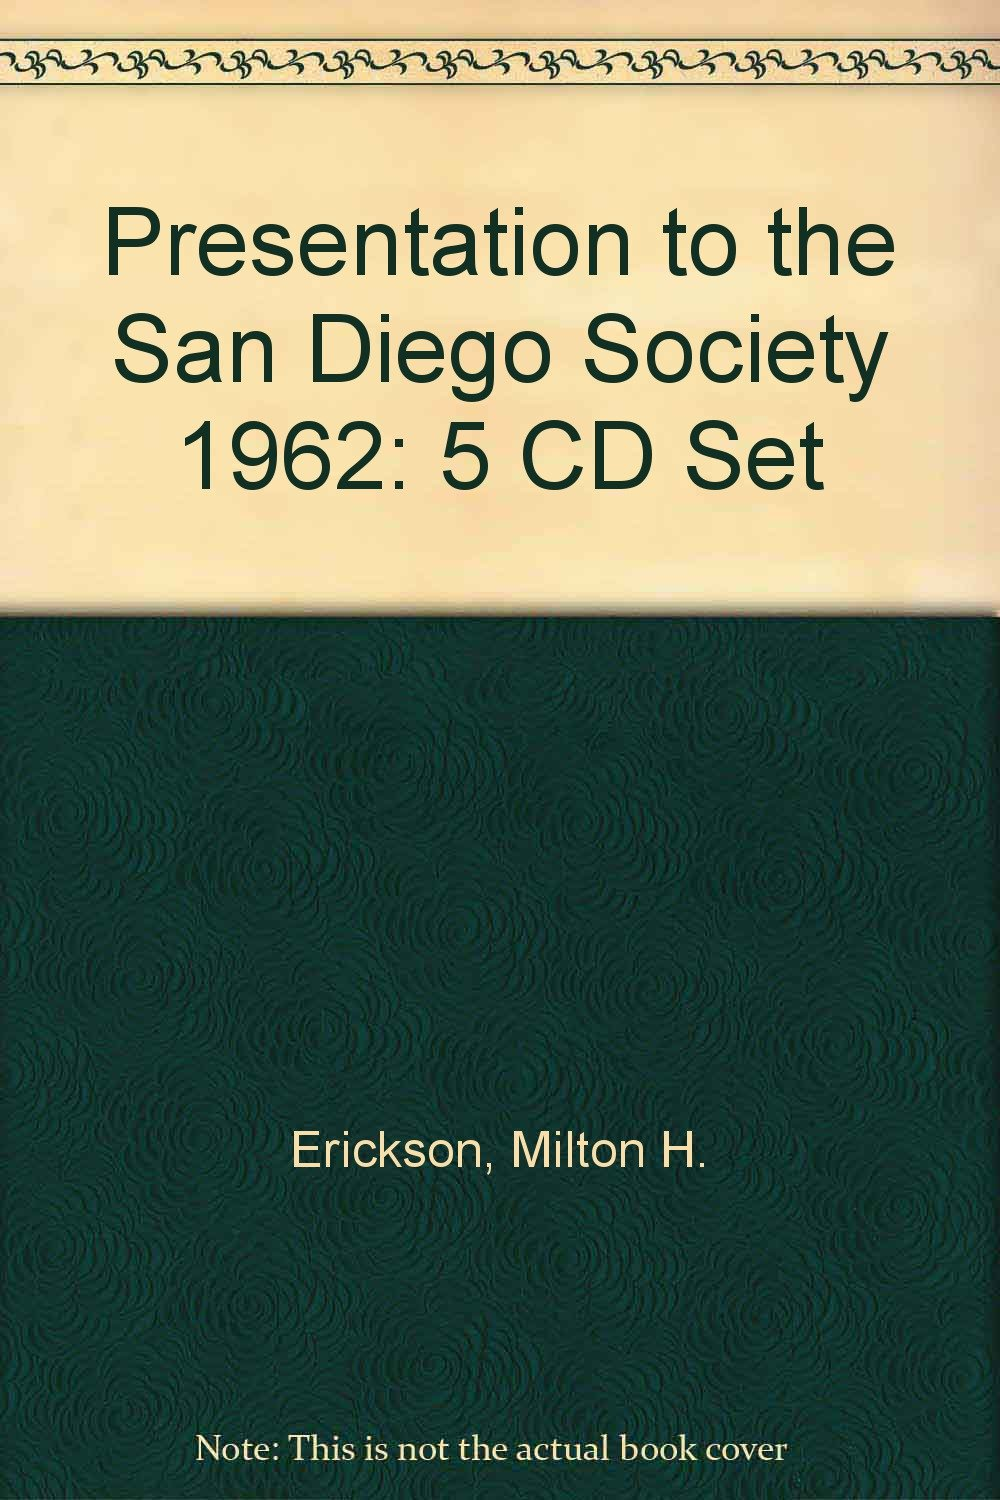 Download Presentation to the San Diego Society 1962: 5 CD Set PDF